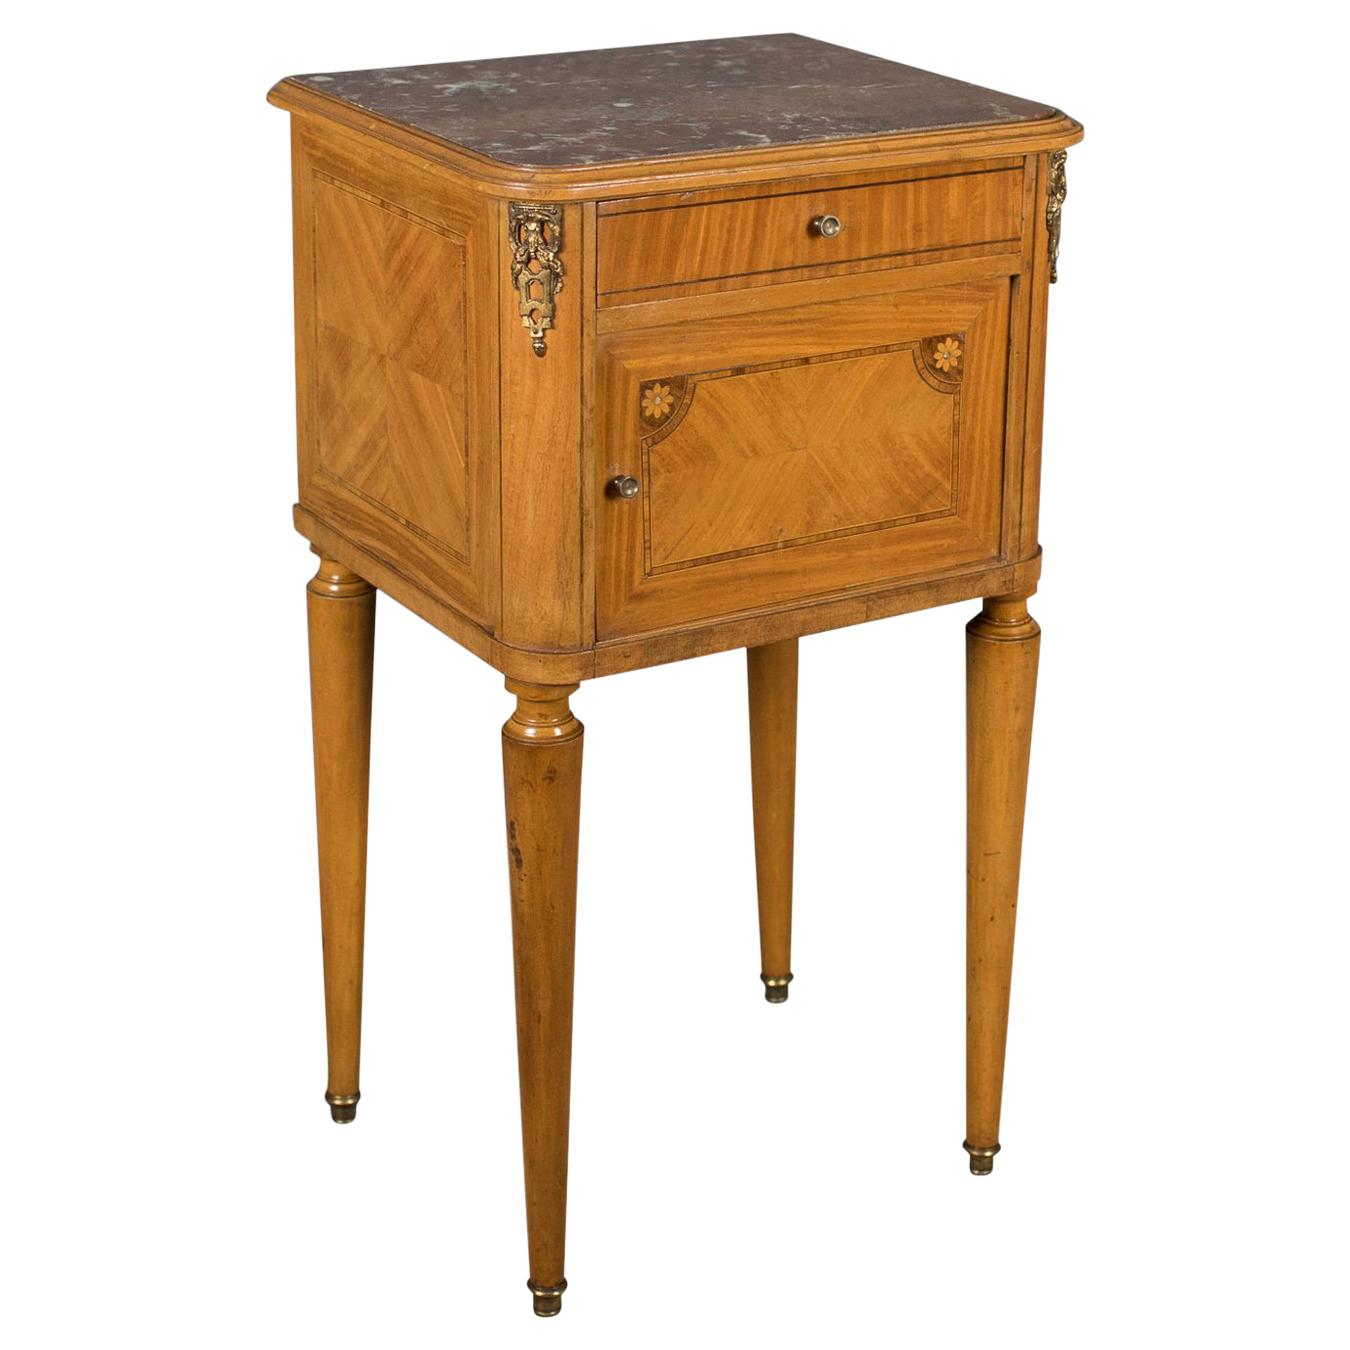 French Antique Bedside Cabinet, Marble-Top Nightstand, circa 1890